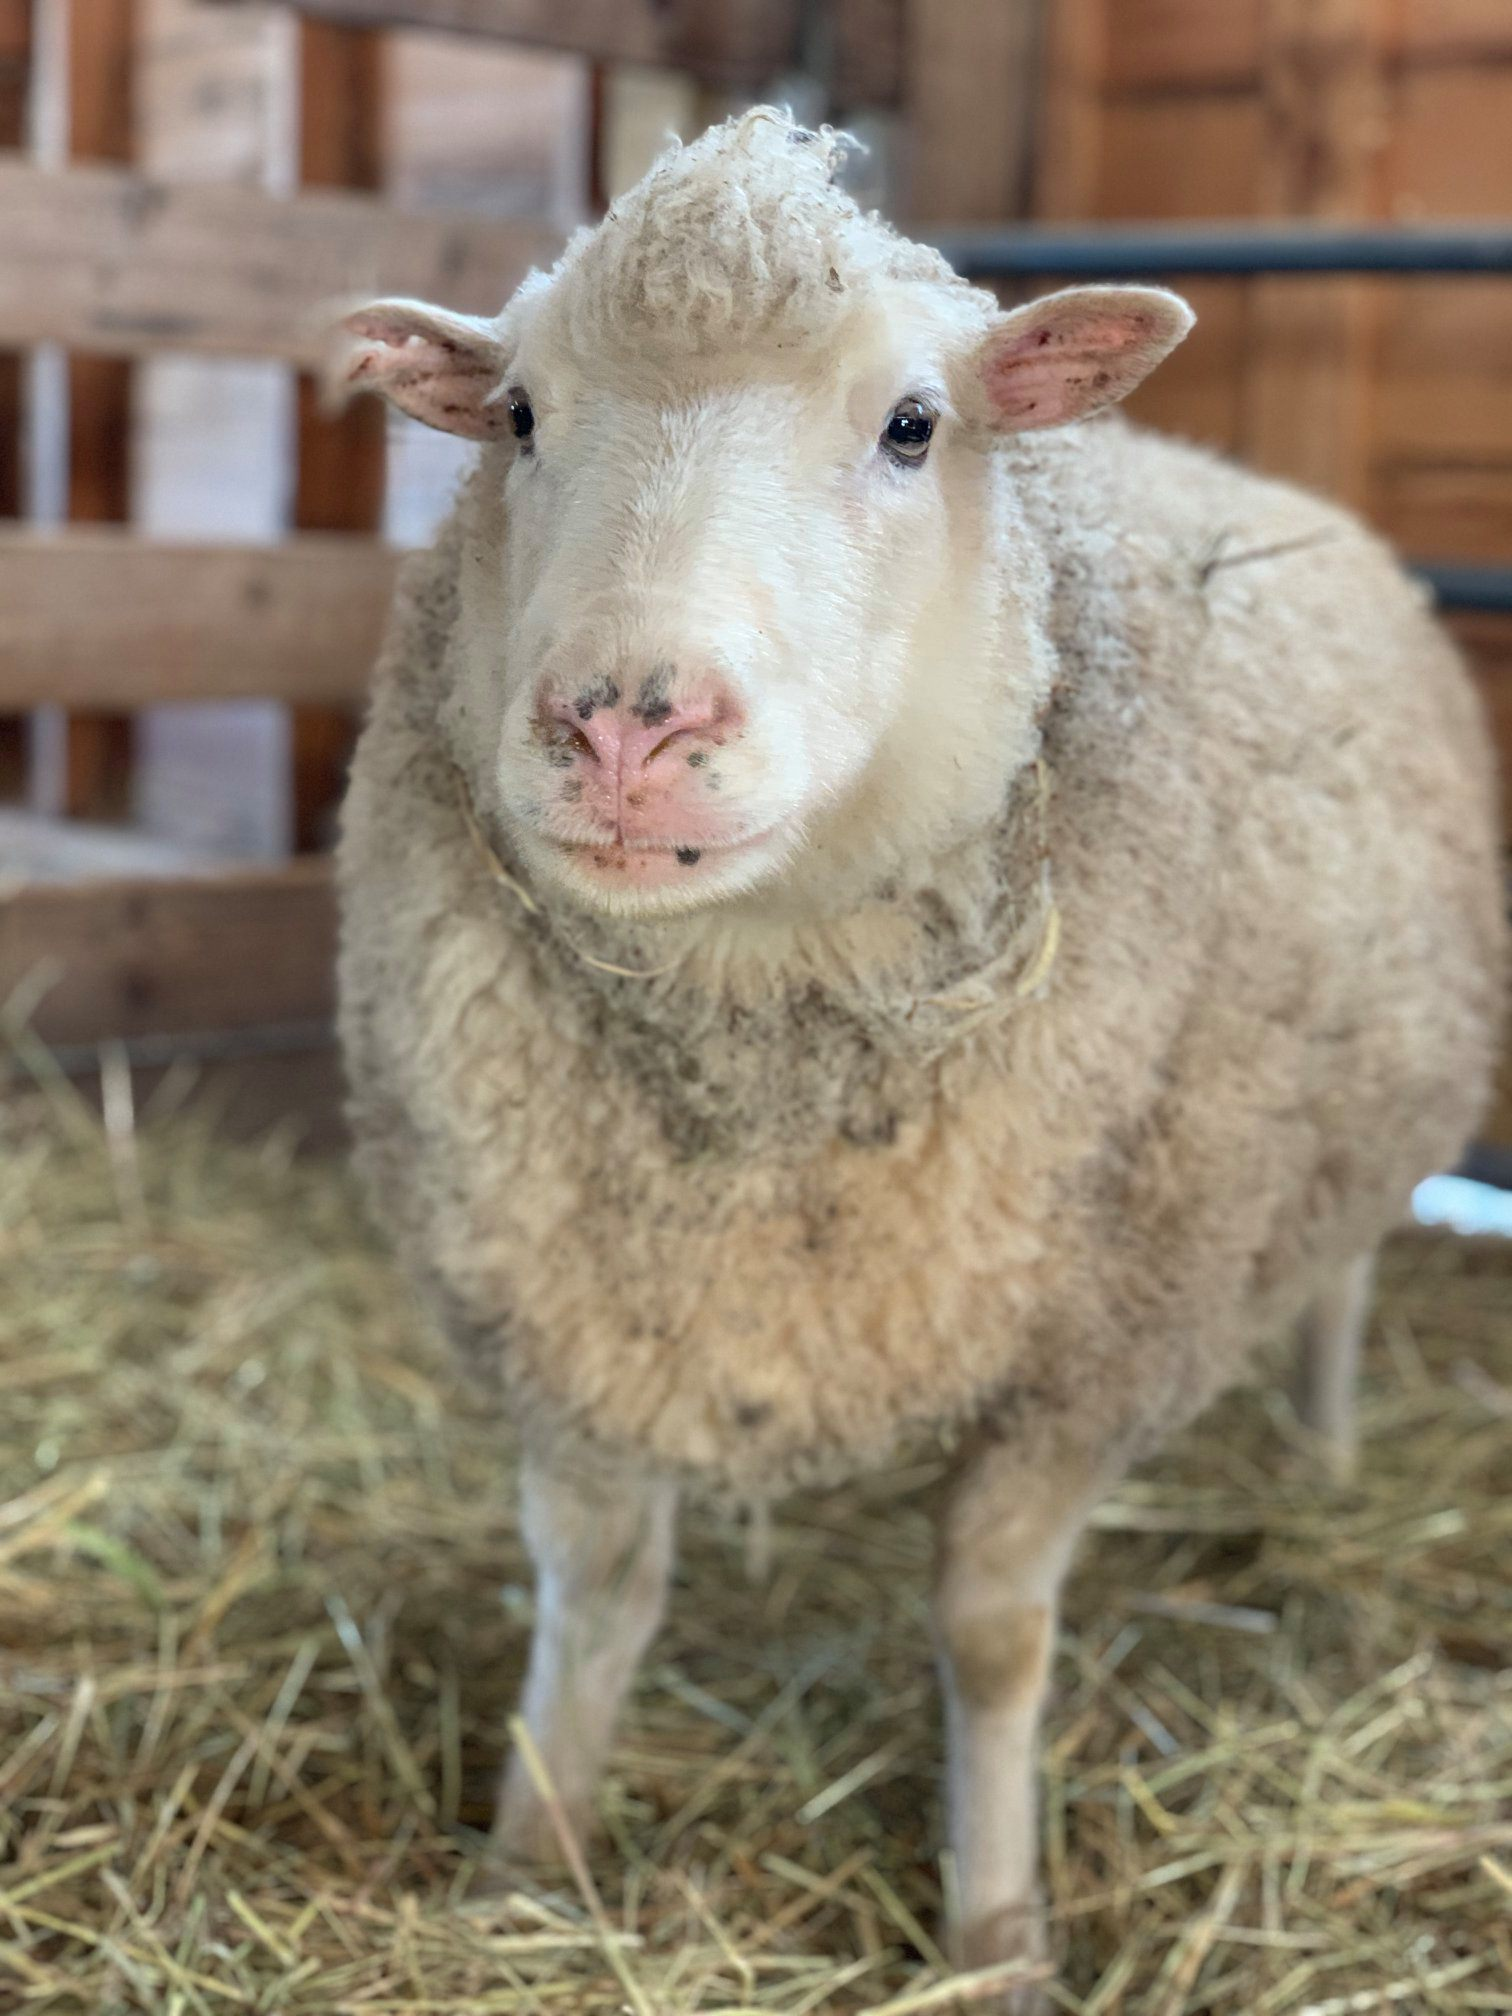 Rescued sheep named Mabel